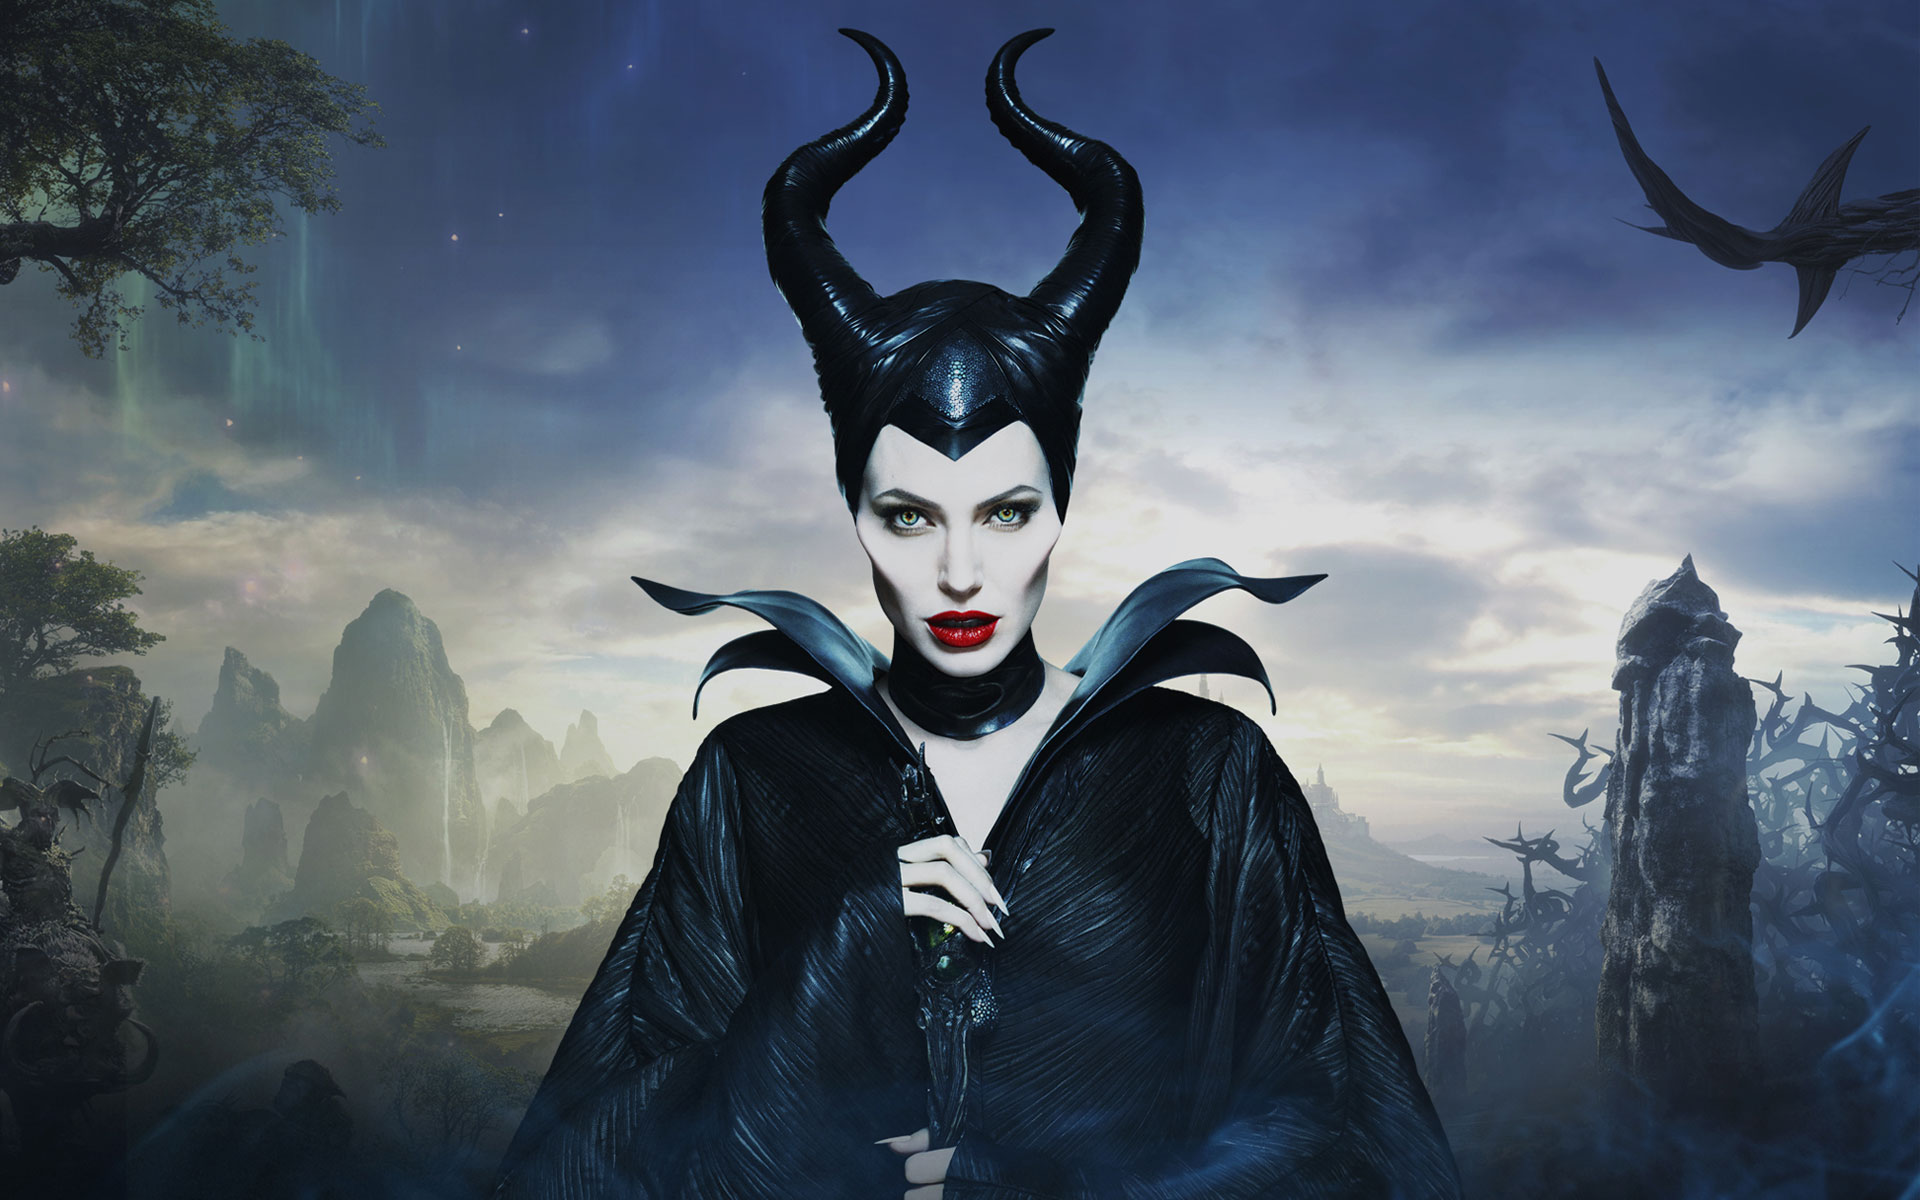 https://i1.wp.com/www.designbolts.com/wp-content/uploads/2014/05/Maleficent-HD-Wallpaper-1920x12001.jpg